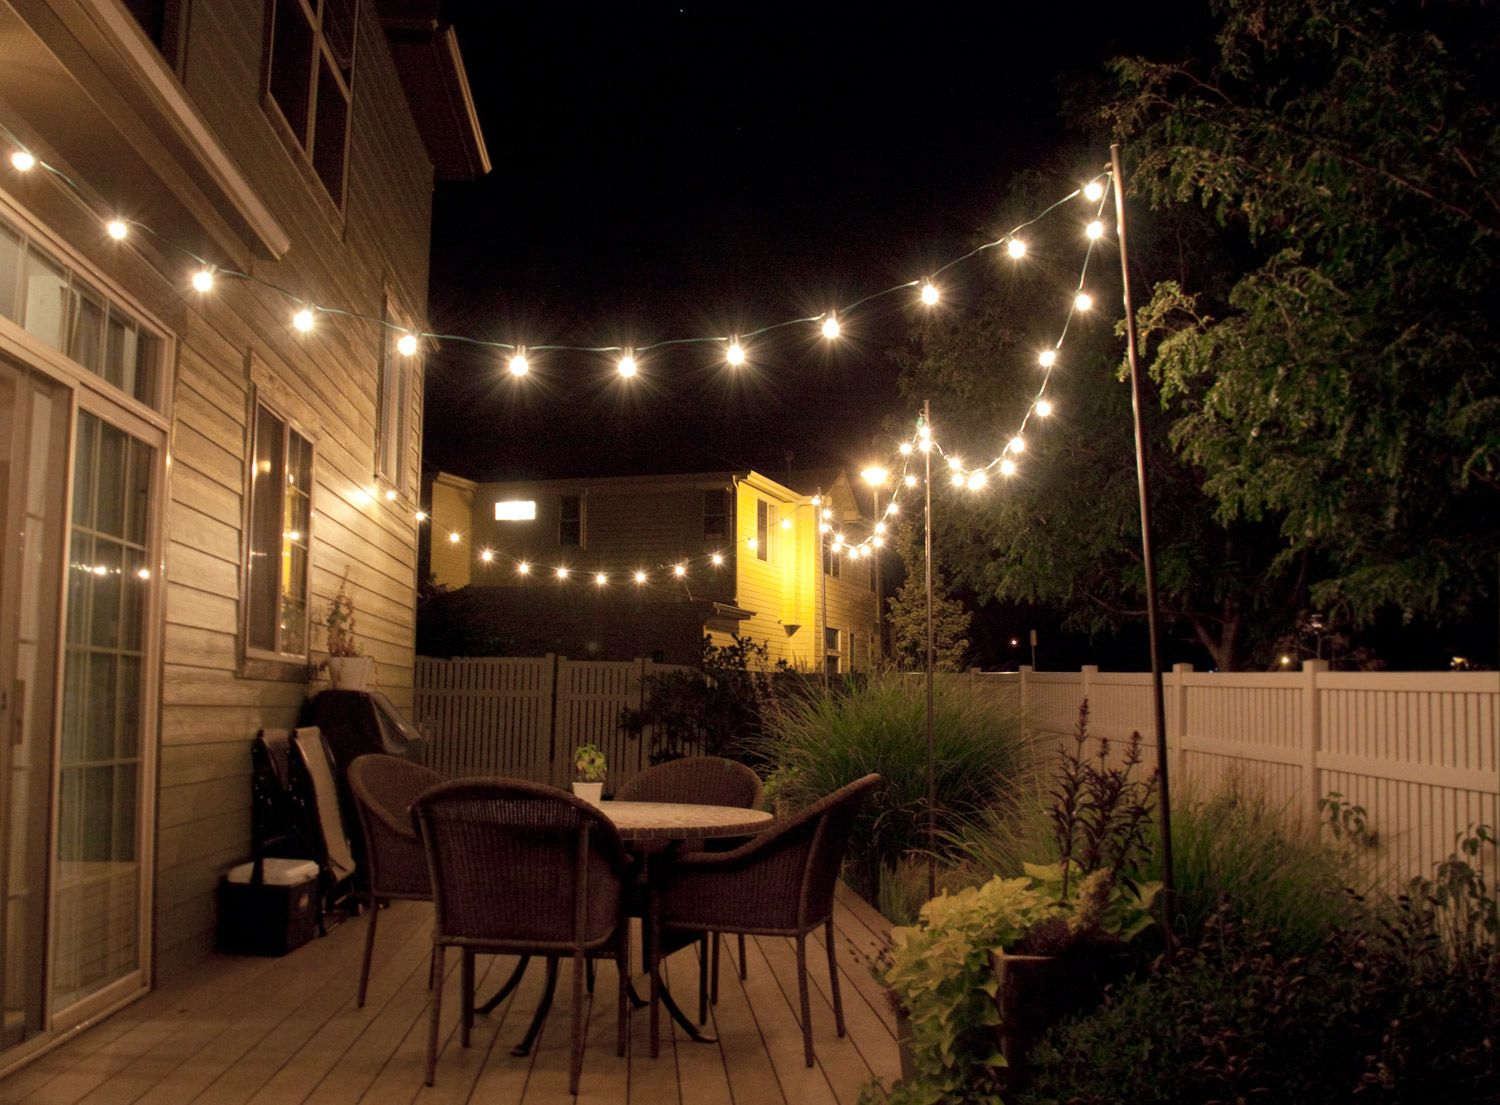 Outdoor Fairy Lights Simple How To Make Inexpensive Poles To Hang String Lights On  Café Style Design Decoration